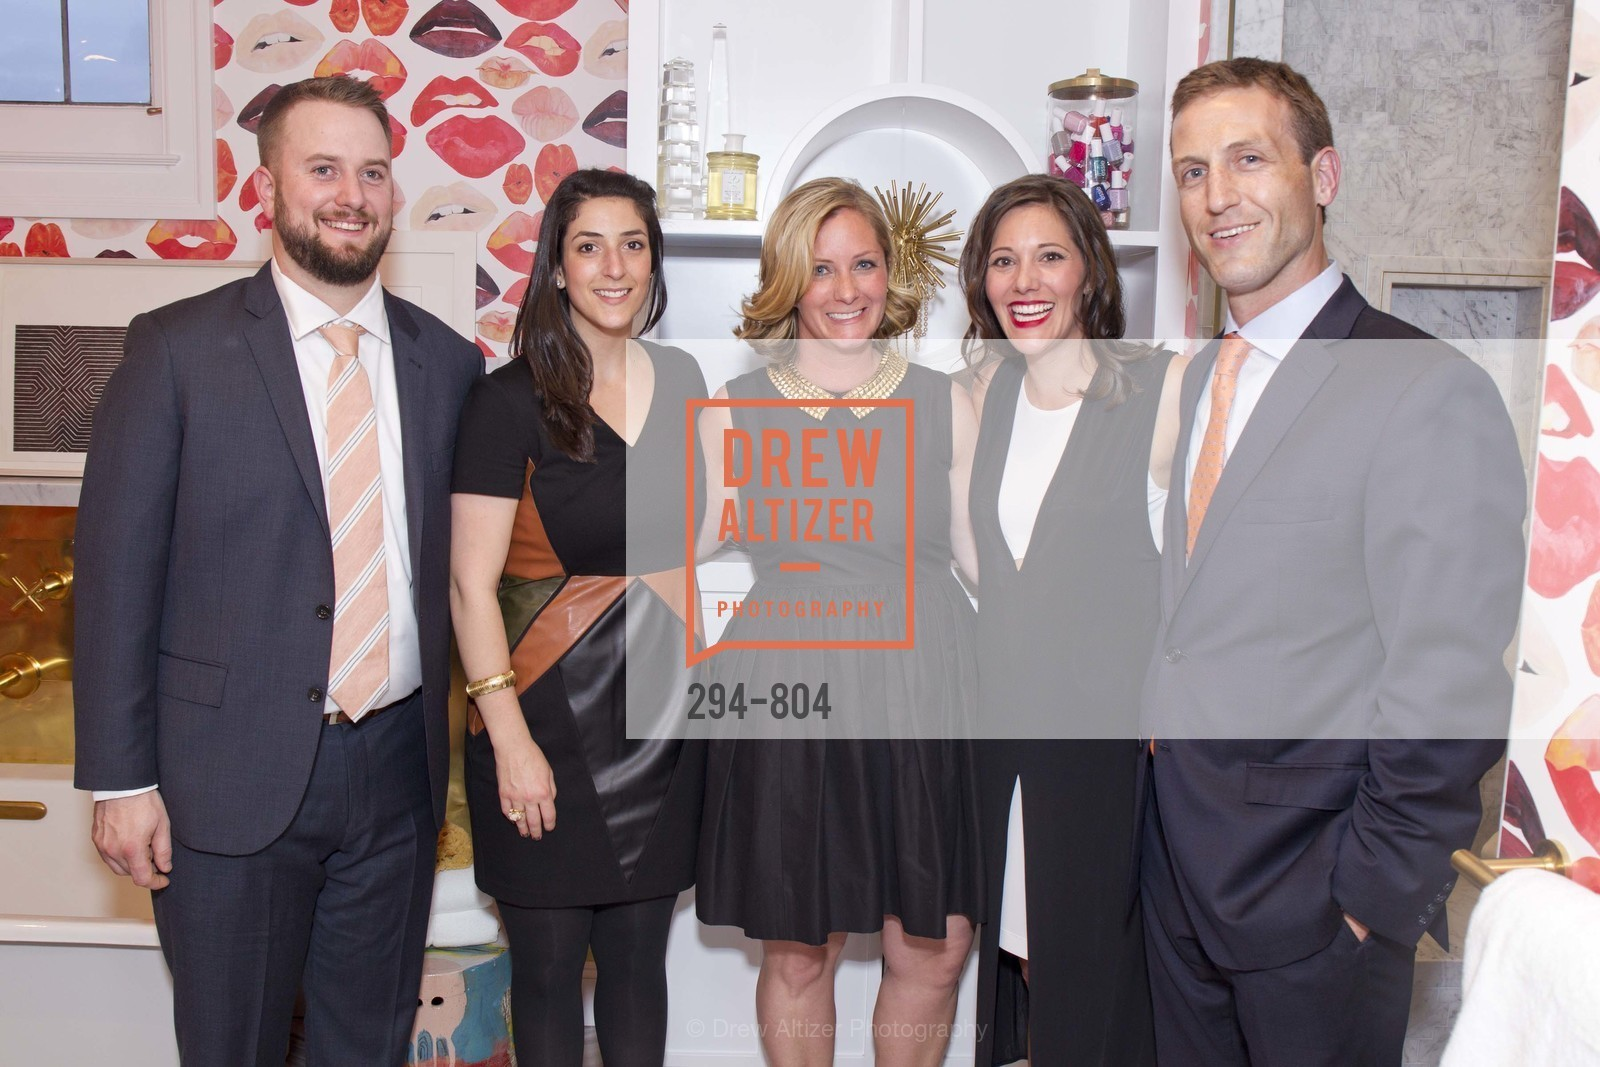 Ross Wunderlich, Reid Bloom, Jennifer Wundrow, Heather Brock, Tyler Brock, San Francisco Decorator Showcase Opening Night Party, US, April 25th, 2015,Drew Altizer, Drew Altizer Photography, full-service agency, private events, San Francisco photographer, photographer california